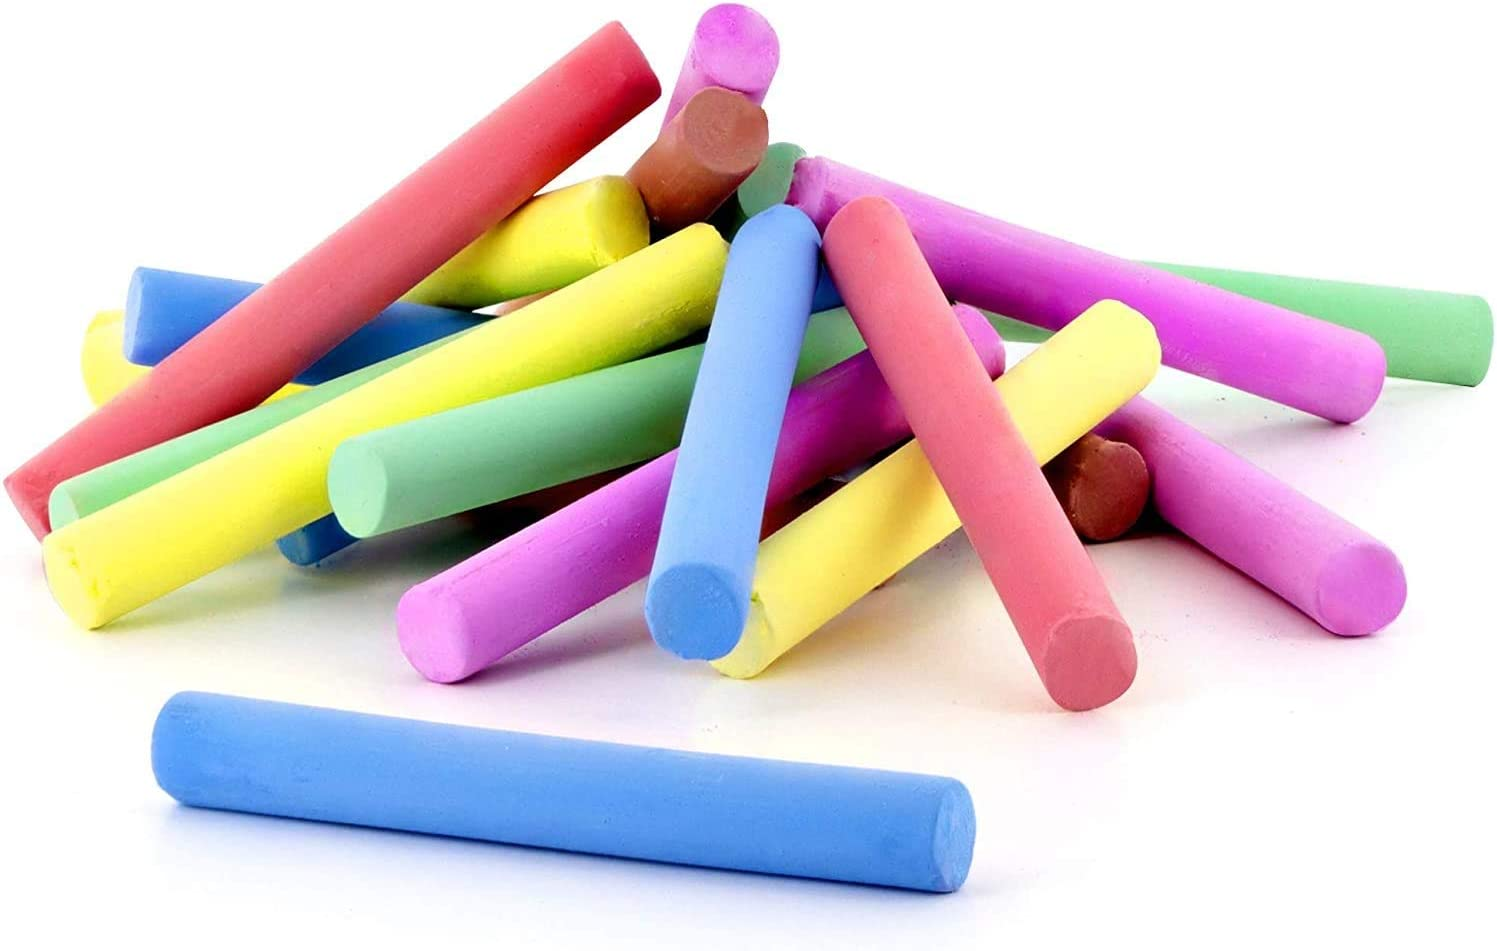 National uniform free shipping Emraw Chalk Assorted Dustless Chal Multi Non-Toxic Colored Outlet SALE